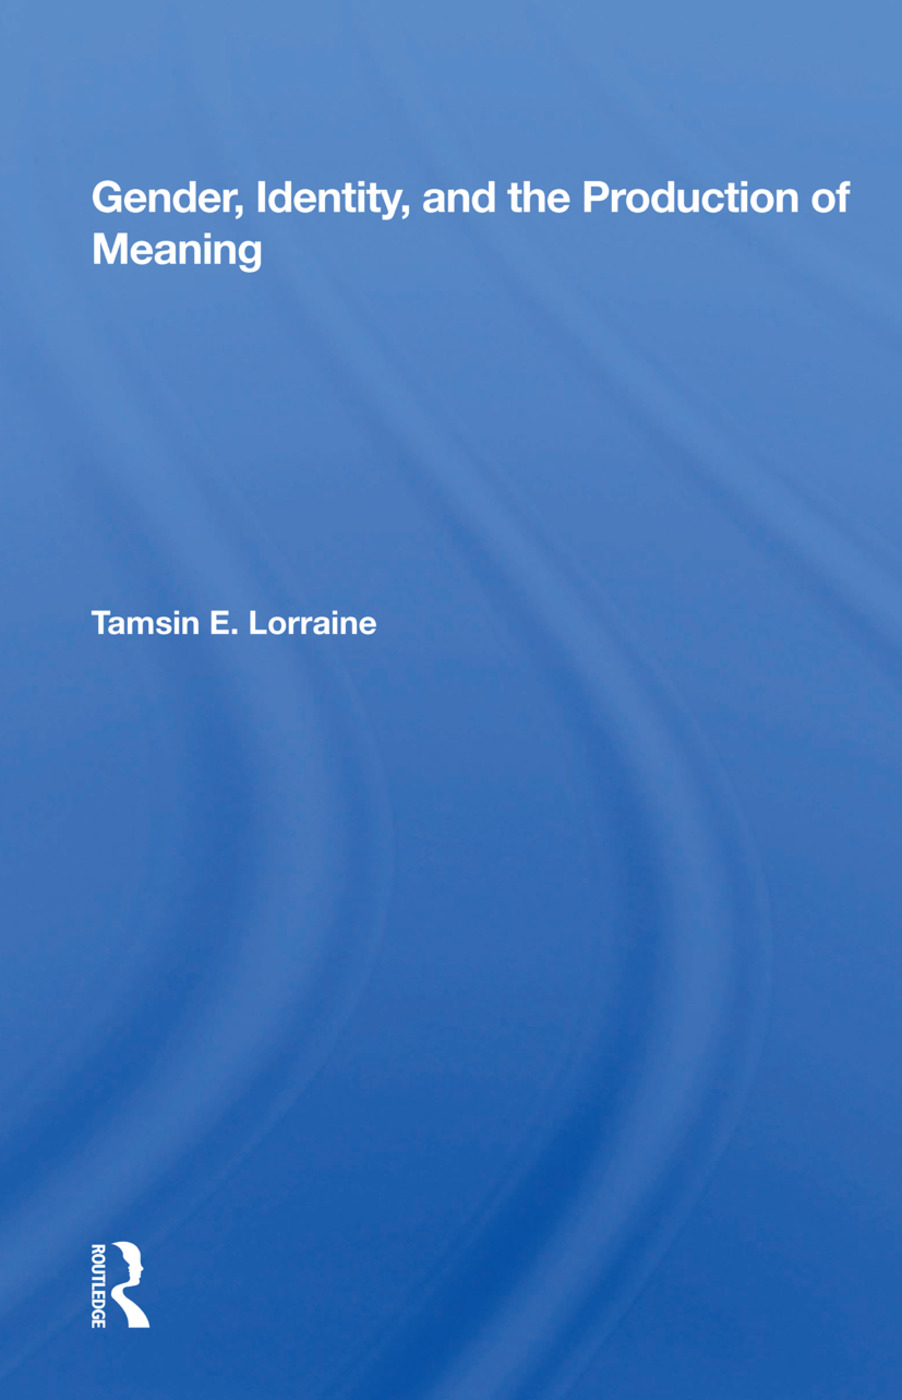 Gender, Identity, and the Production of Meaning book cover